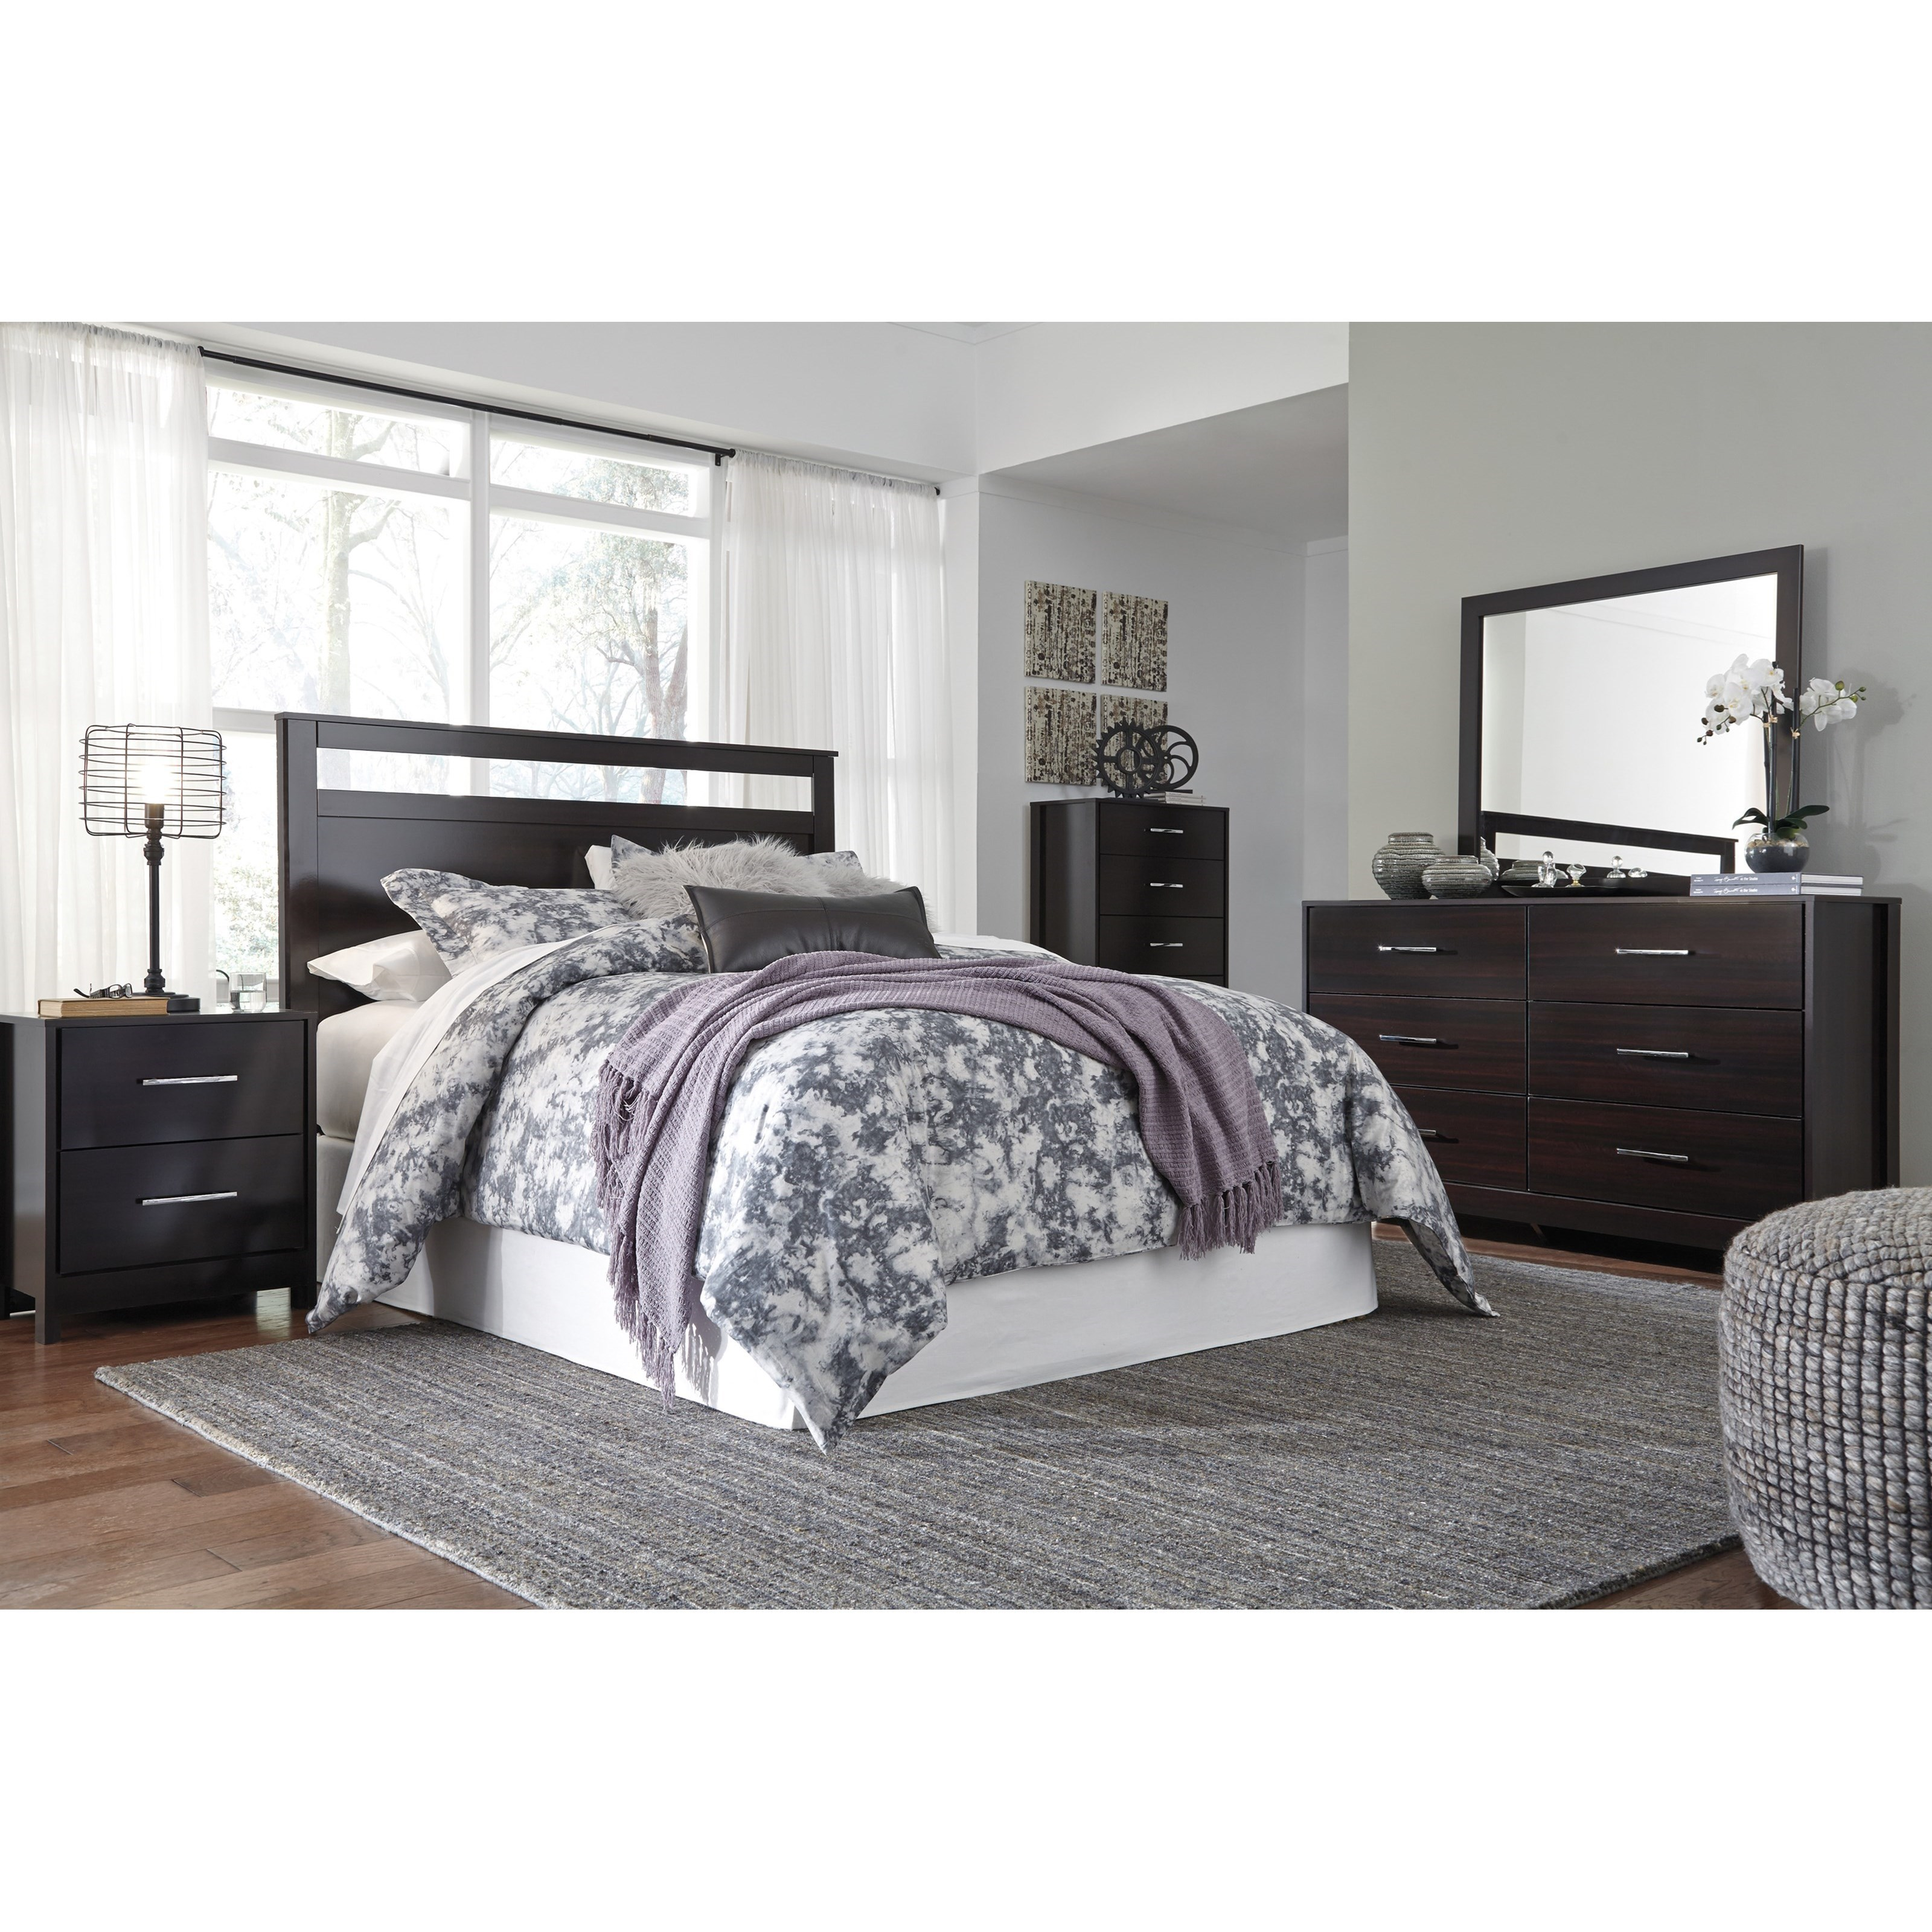 Signature Design by Ashley Agella Queen/Full Bedroom Group - Item Number: B072 Q Bedroom Group 2